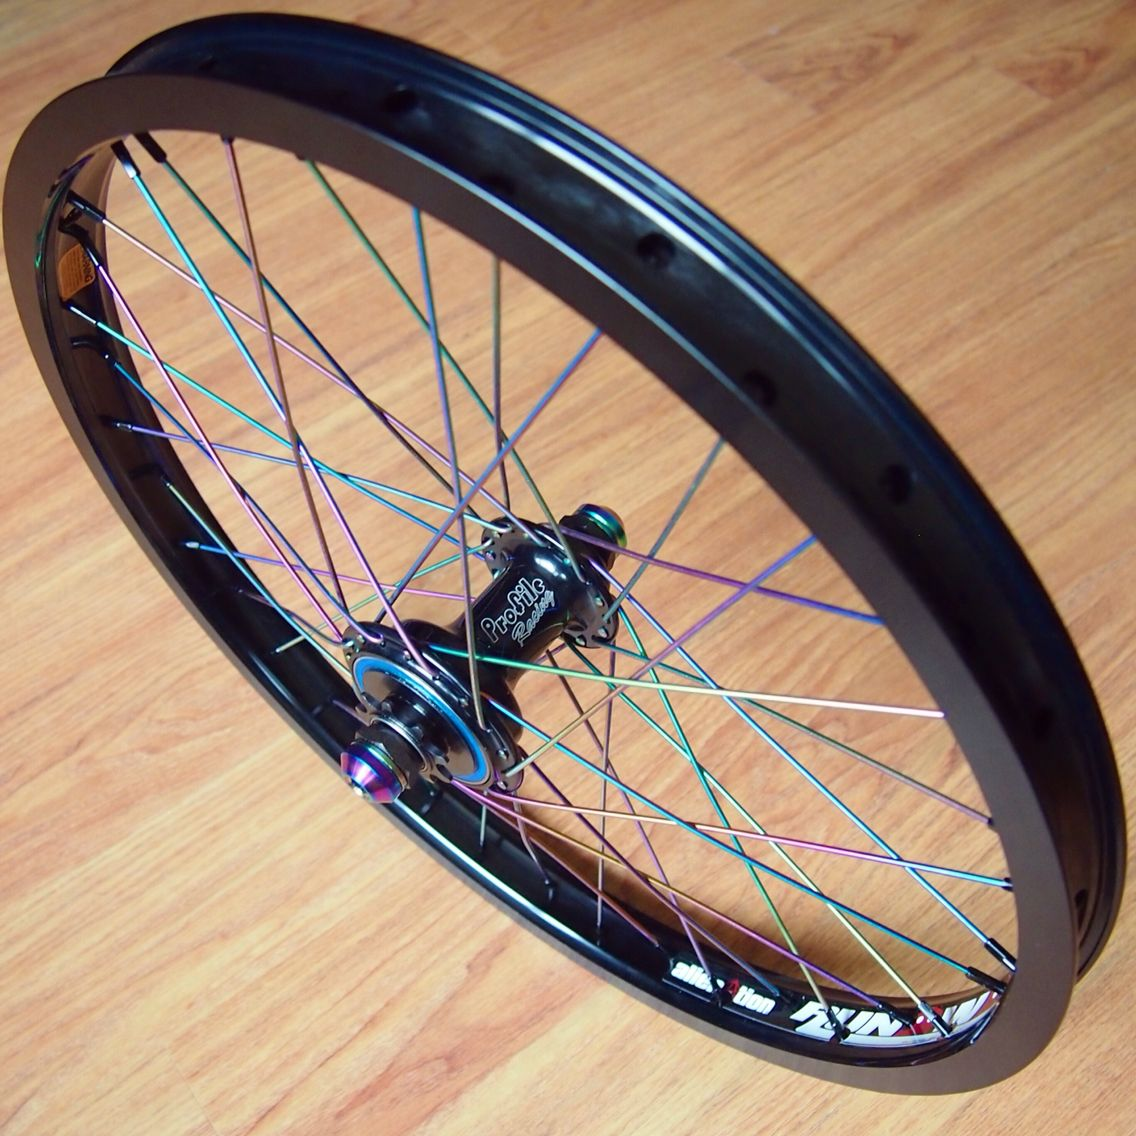 Another stunning wheel build done for team rider @callumargent using